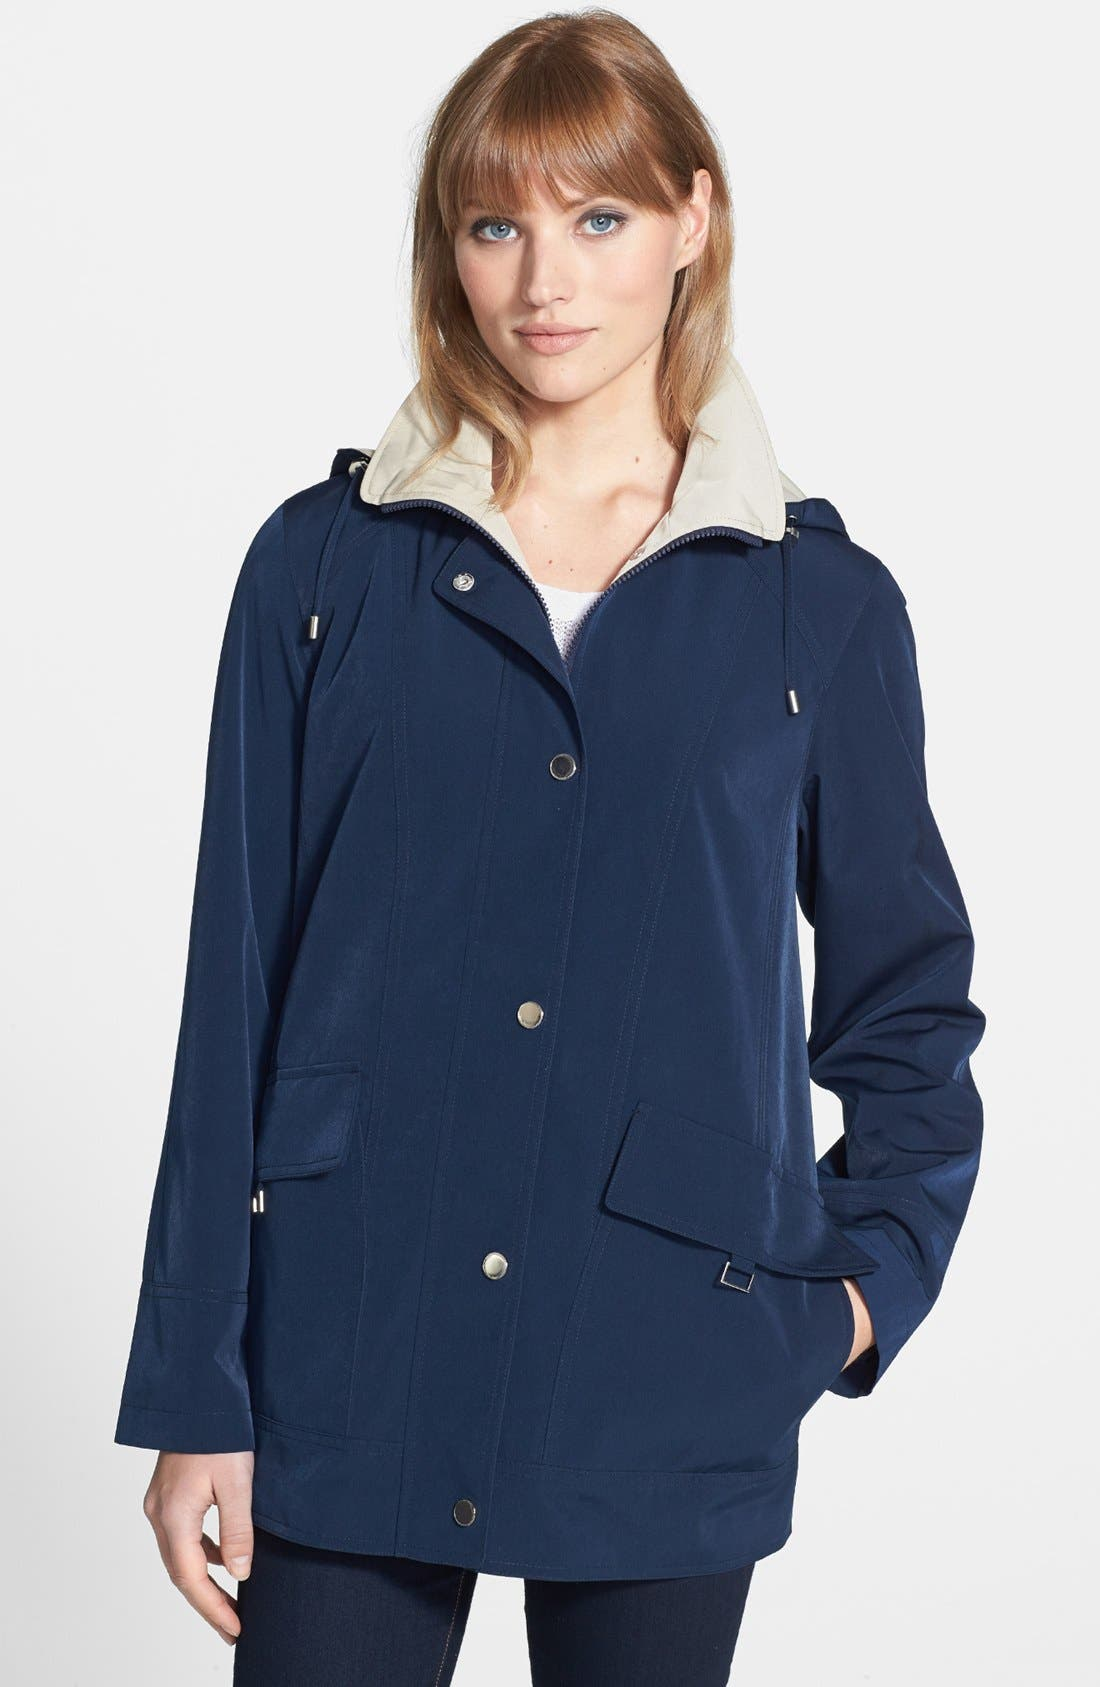 Alternate Image 1 Selected - Gallery Convertible Collar A-Line Coat with Detachable Hood (Regular & Petite) (Online Only)